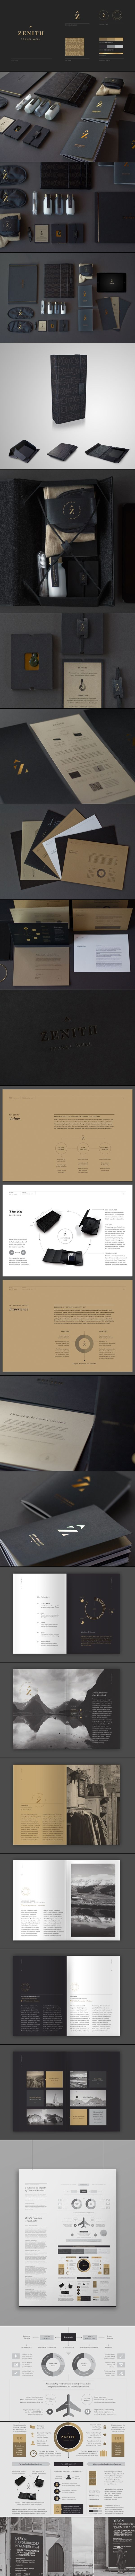 Cool Brand Identity Design on the Internet. Zenith Premium. #branding #brandidentity #identitydesign